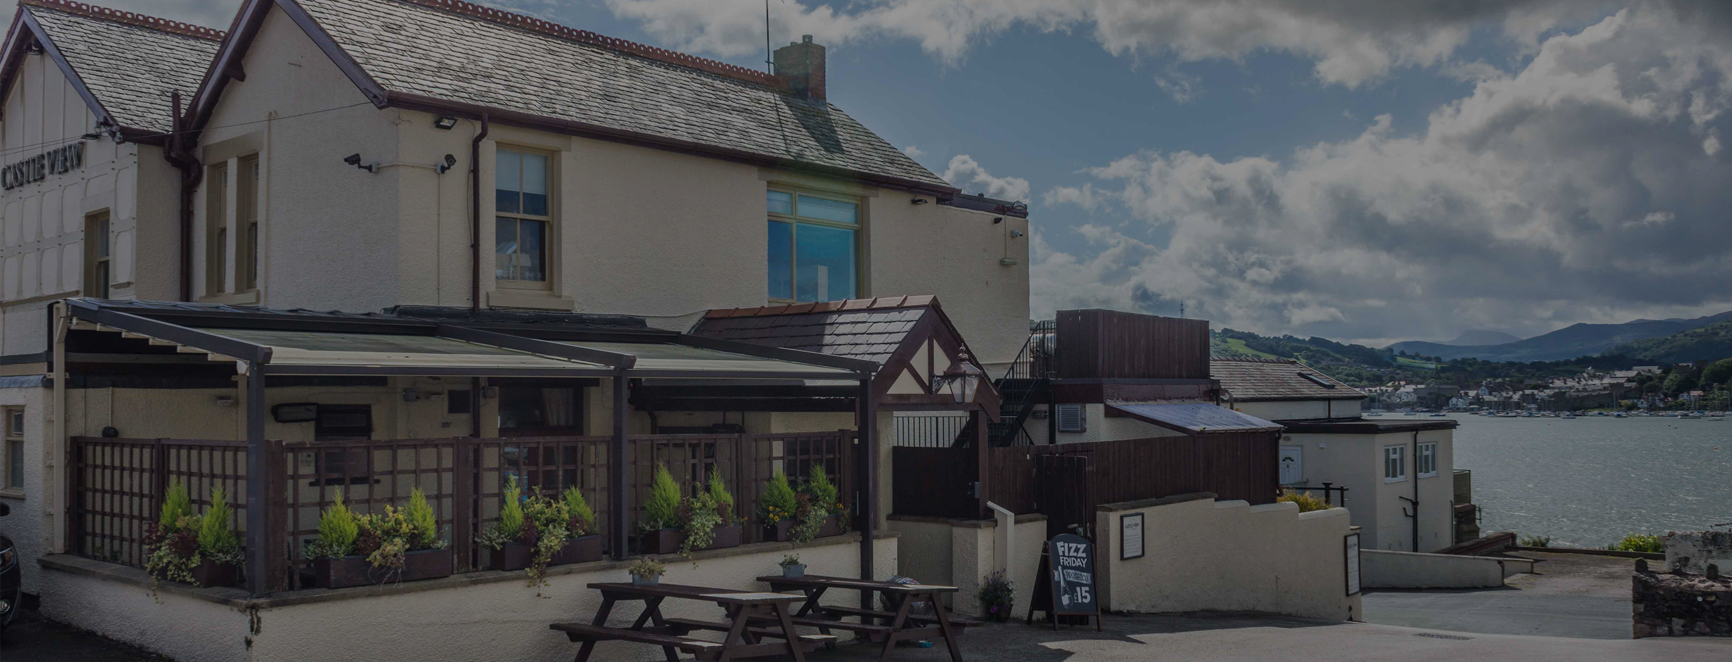 Castle View bar & restaurant, Deganwy, North Wales,